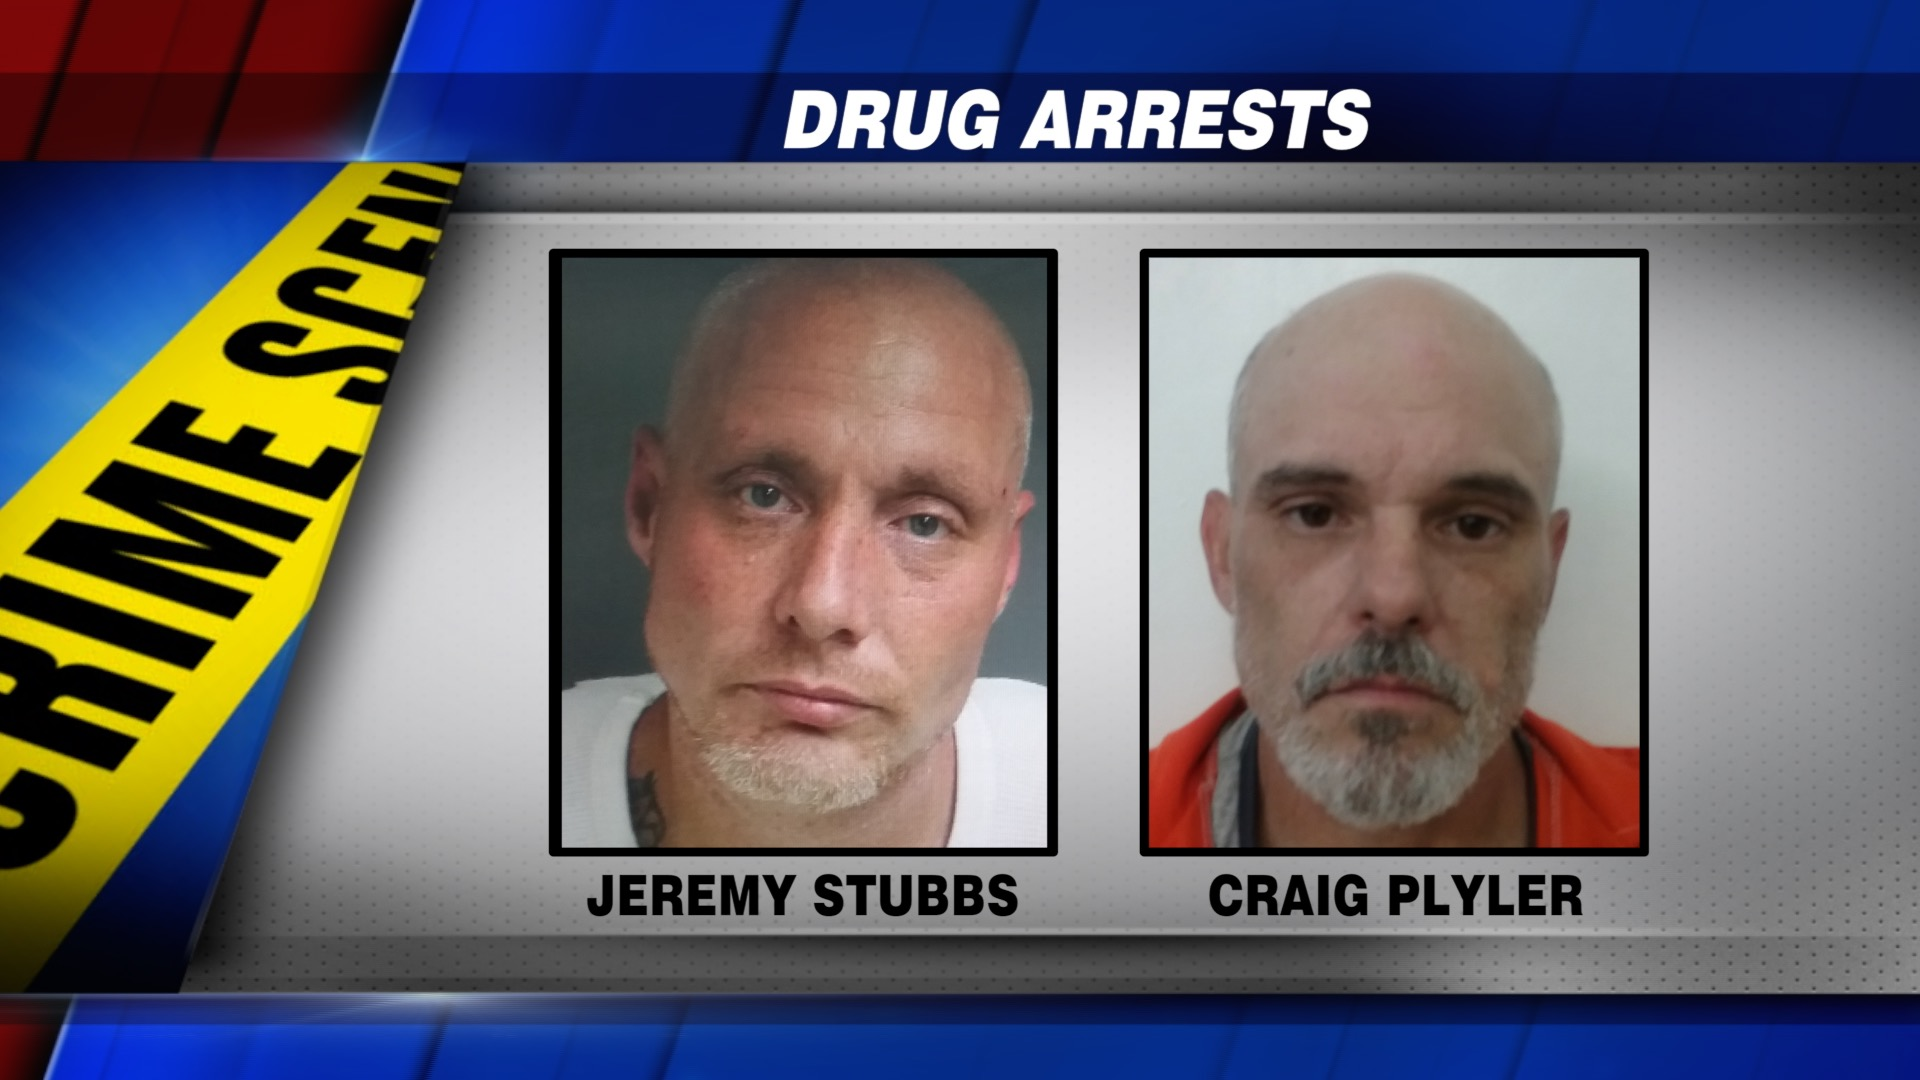 Undercover Operation Leads to Major Drug Bust in Dallas Co